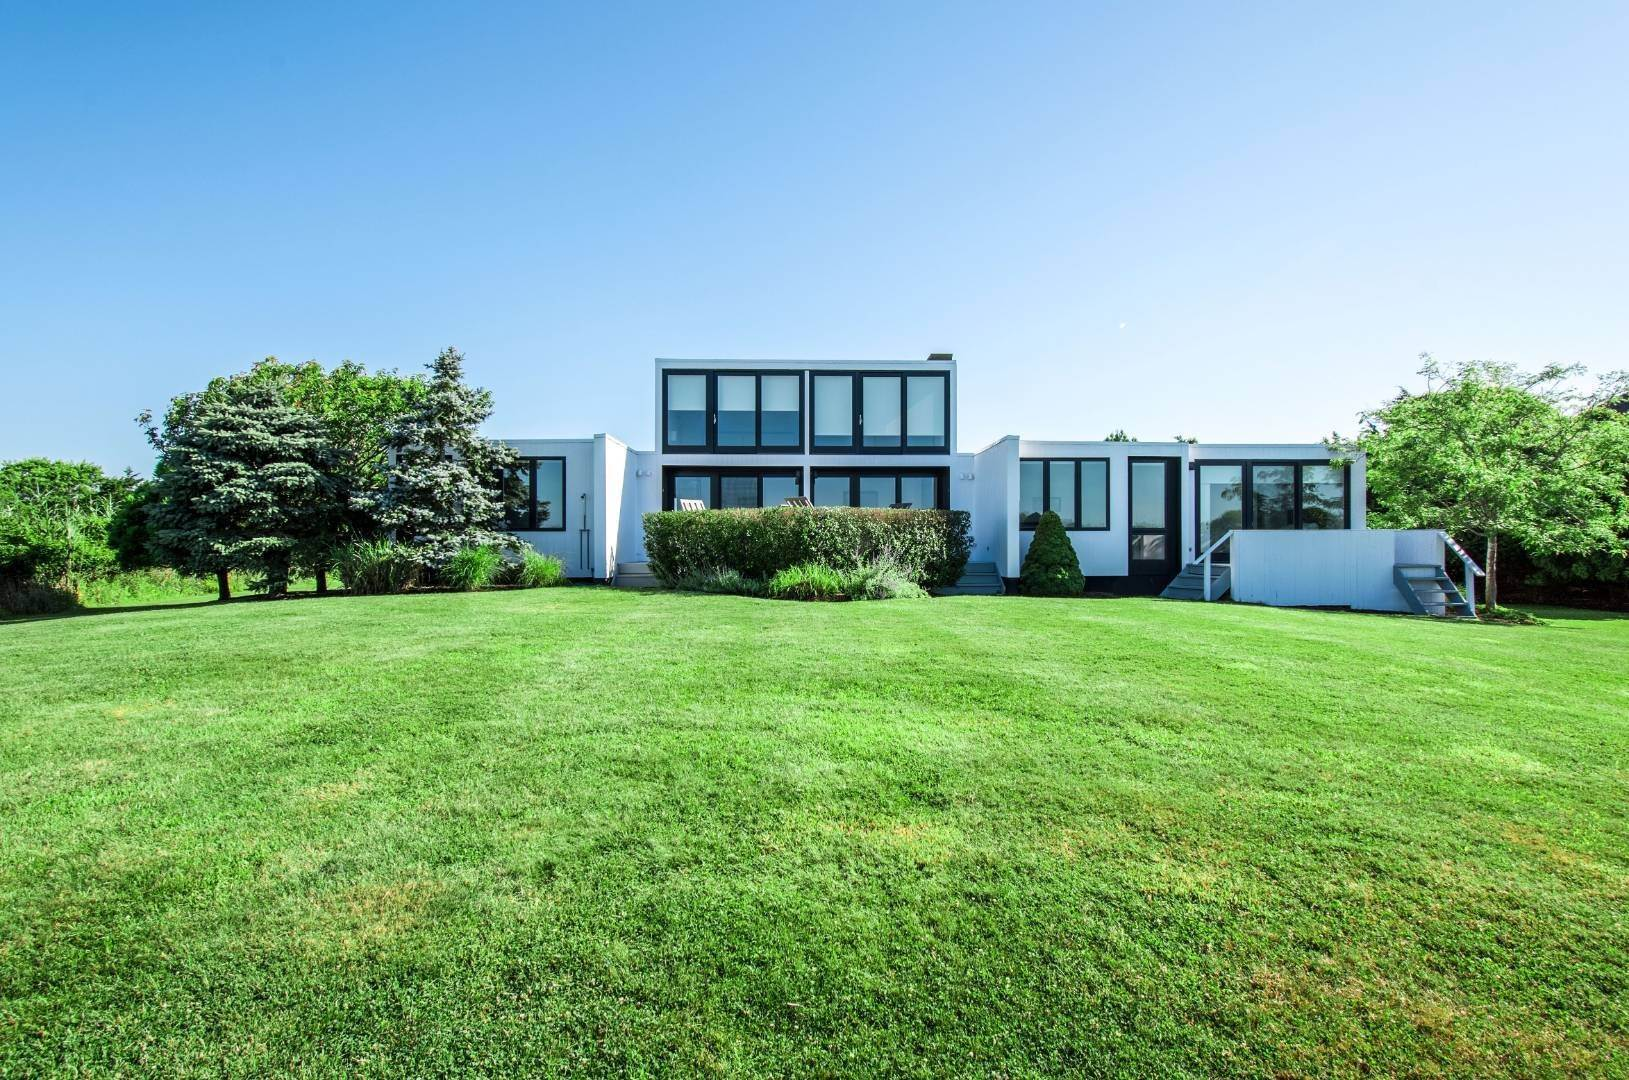 Single Family Home at Sagaponack Waterfront And Ocean Views Sagaponack Village, NY 11962